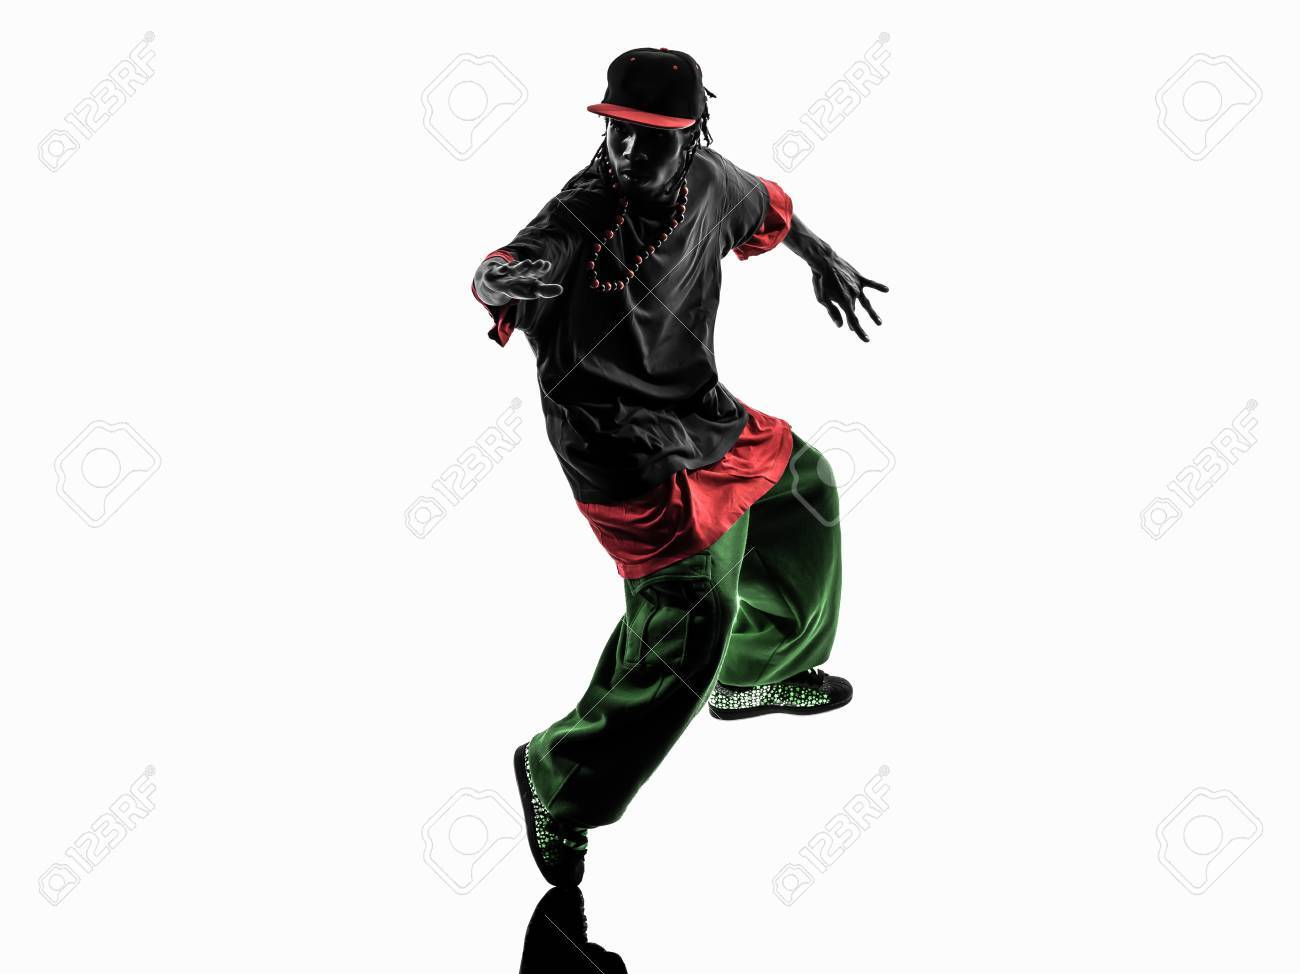 22bffe545 one hip hop acrobatic break dancer breakdancing young man silhouette white  background Stock Photo - 39953073